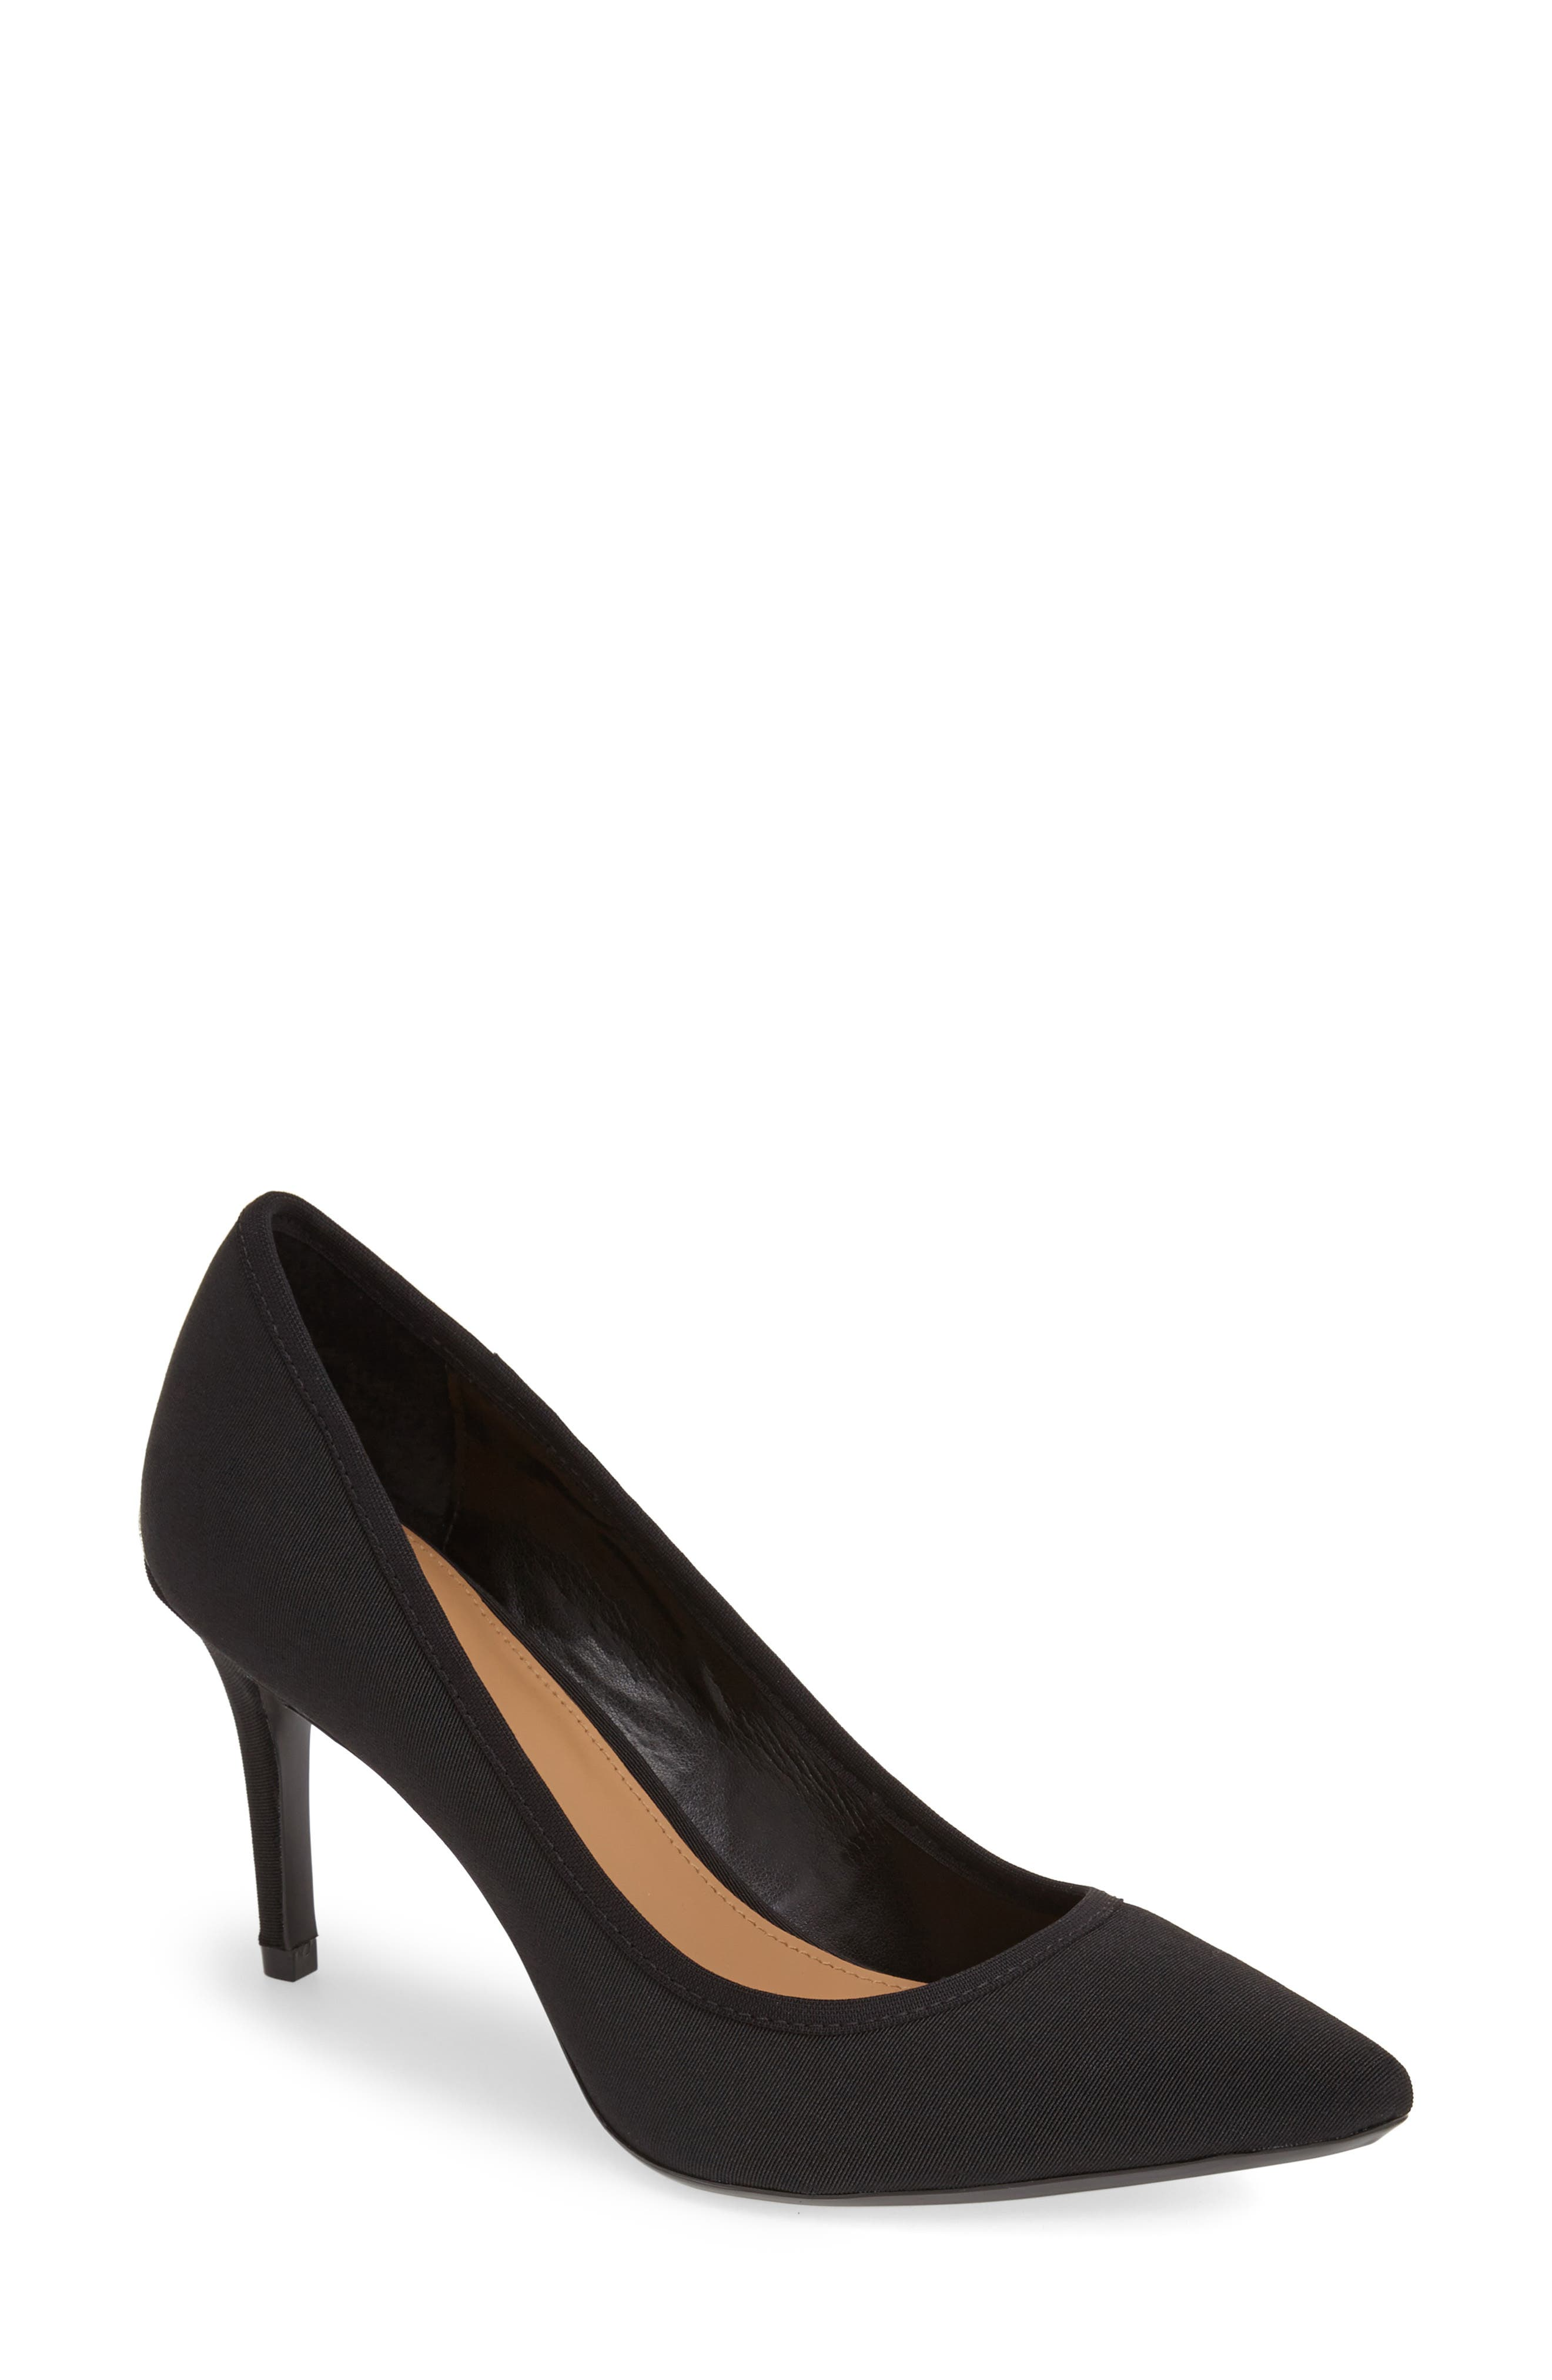 'Gayle' Pointy Toe Pump,                             Alternate thumbnail 2, color,                             BLACK STRETCH